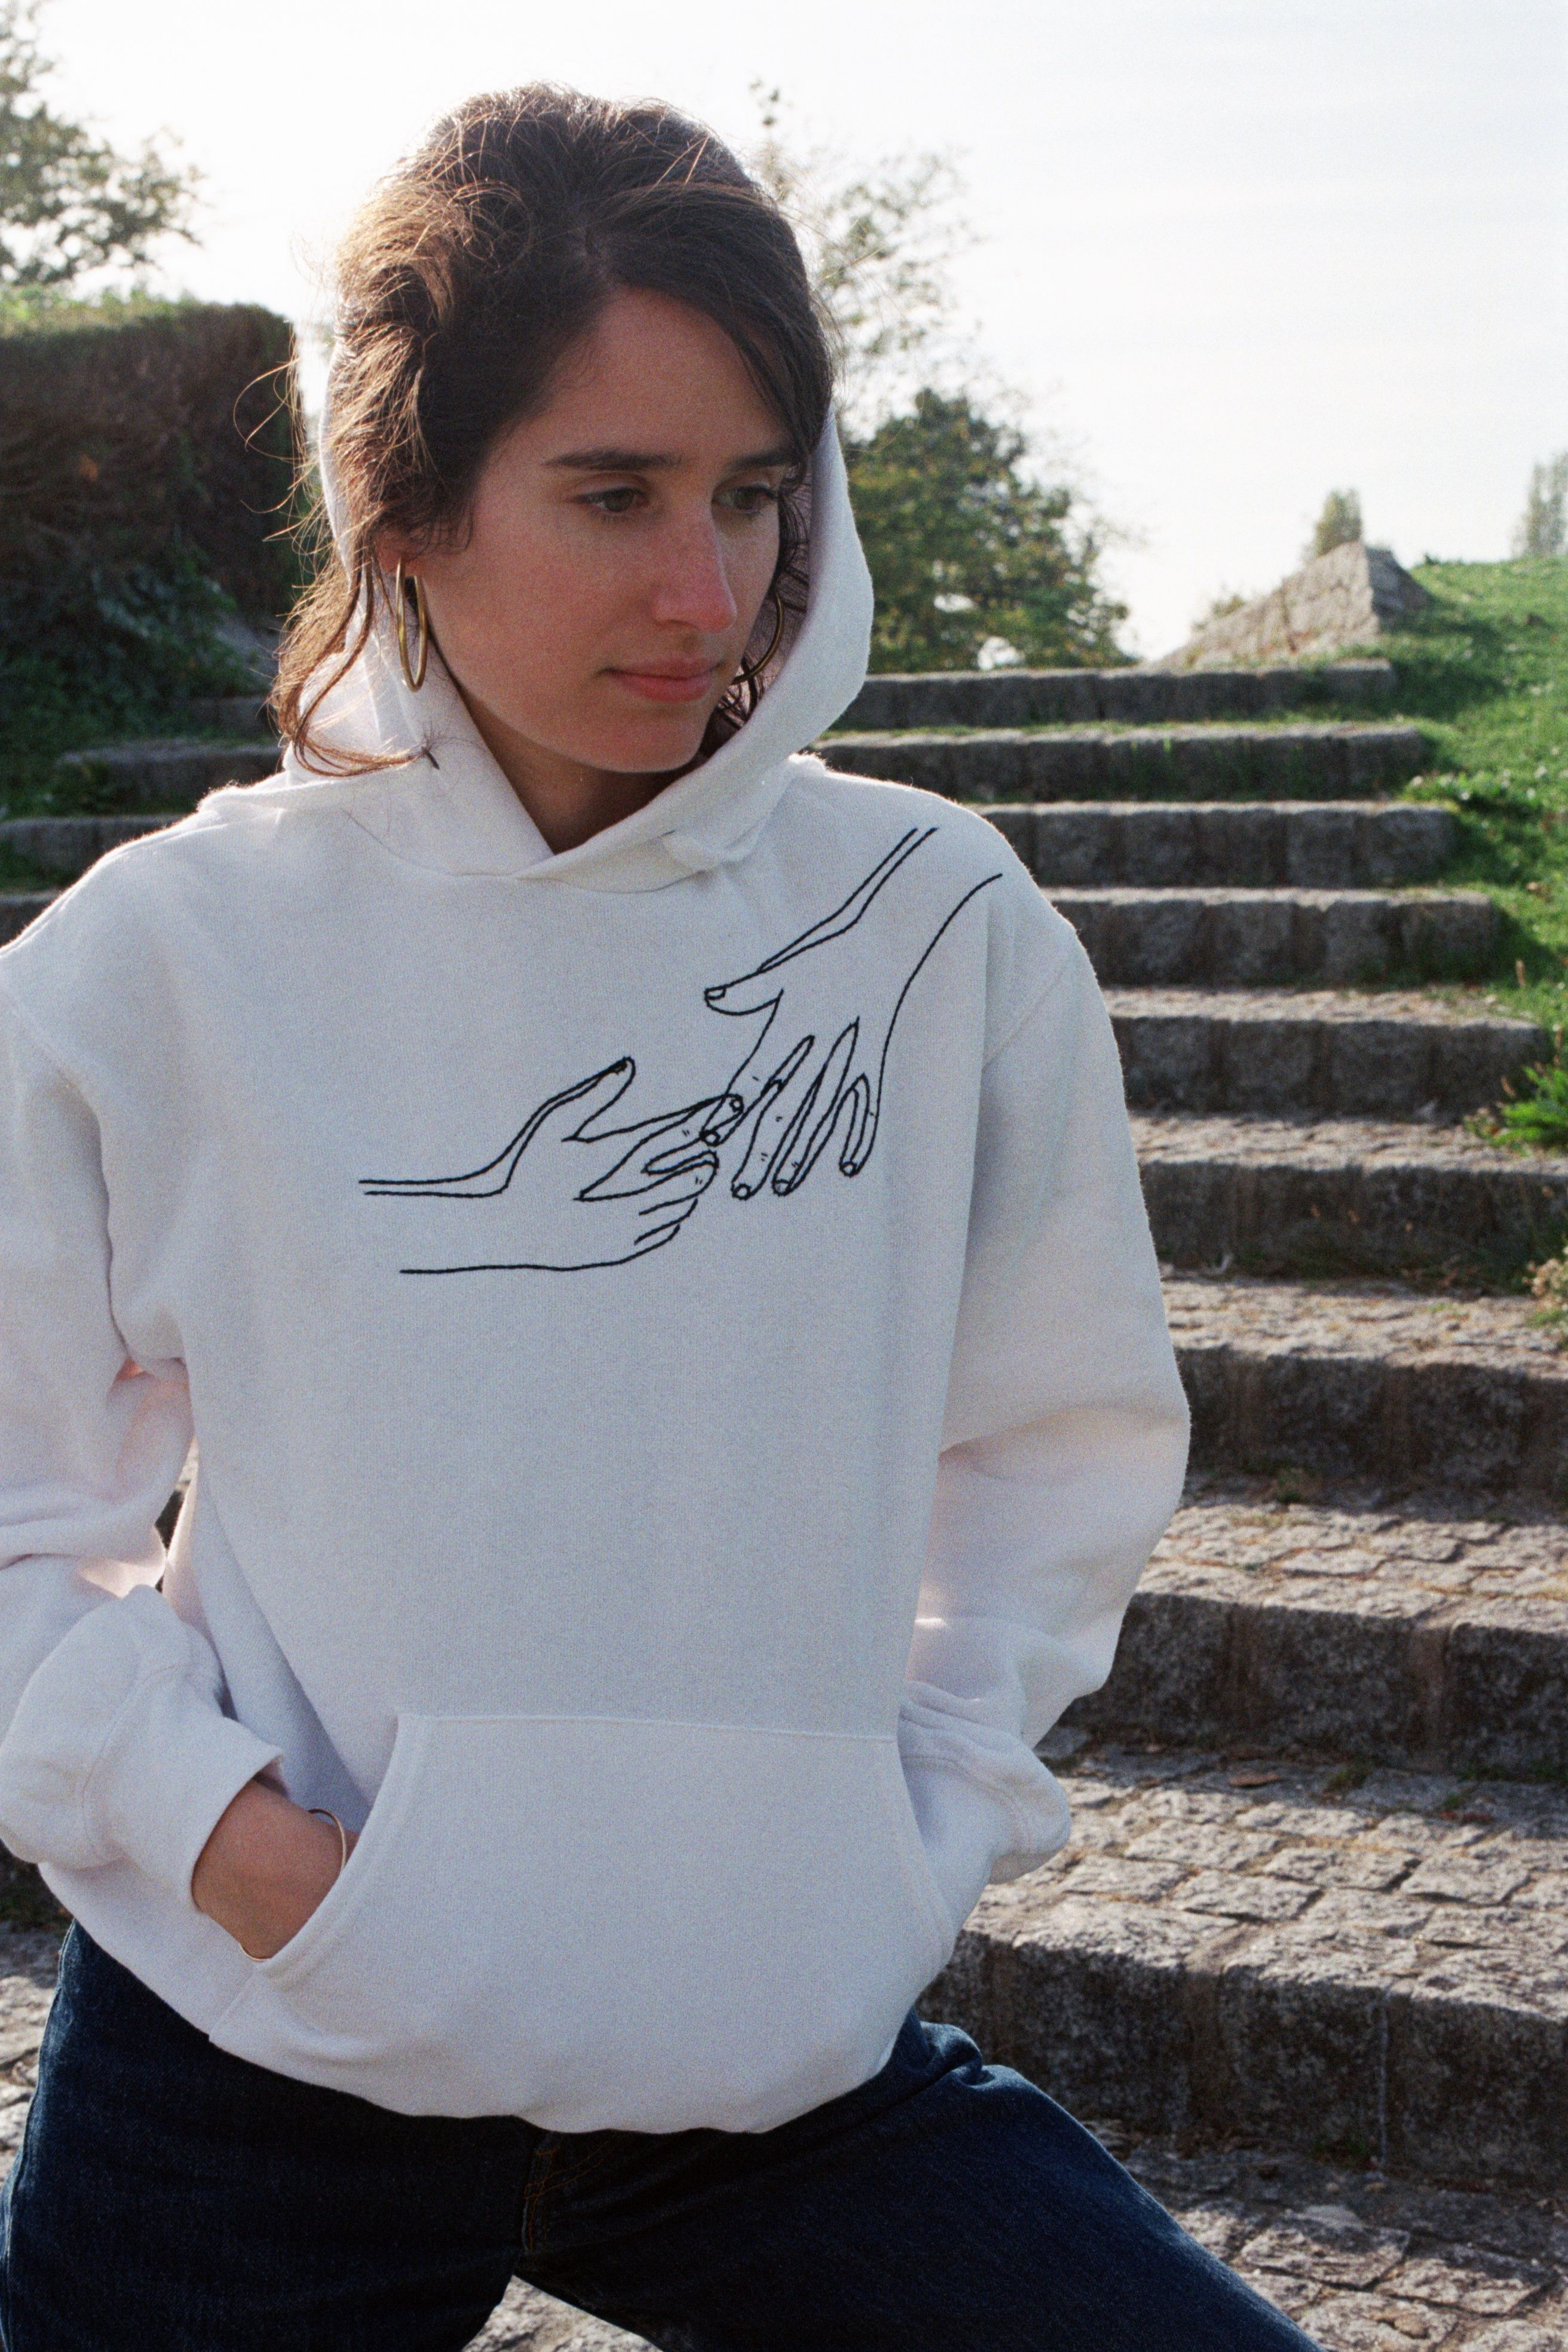 Hand Embroidered Sweatshirts And Hoodies Same Deal As Our T Shirts But The Extra Cosy Version Hoodie Design Embroidered Hoodie Sweatshirts Embroidered Hoodie [ 3936 x 2624 Pixel ]